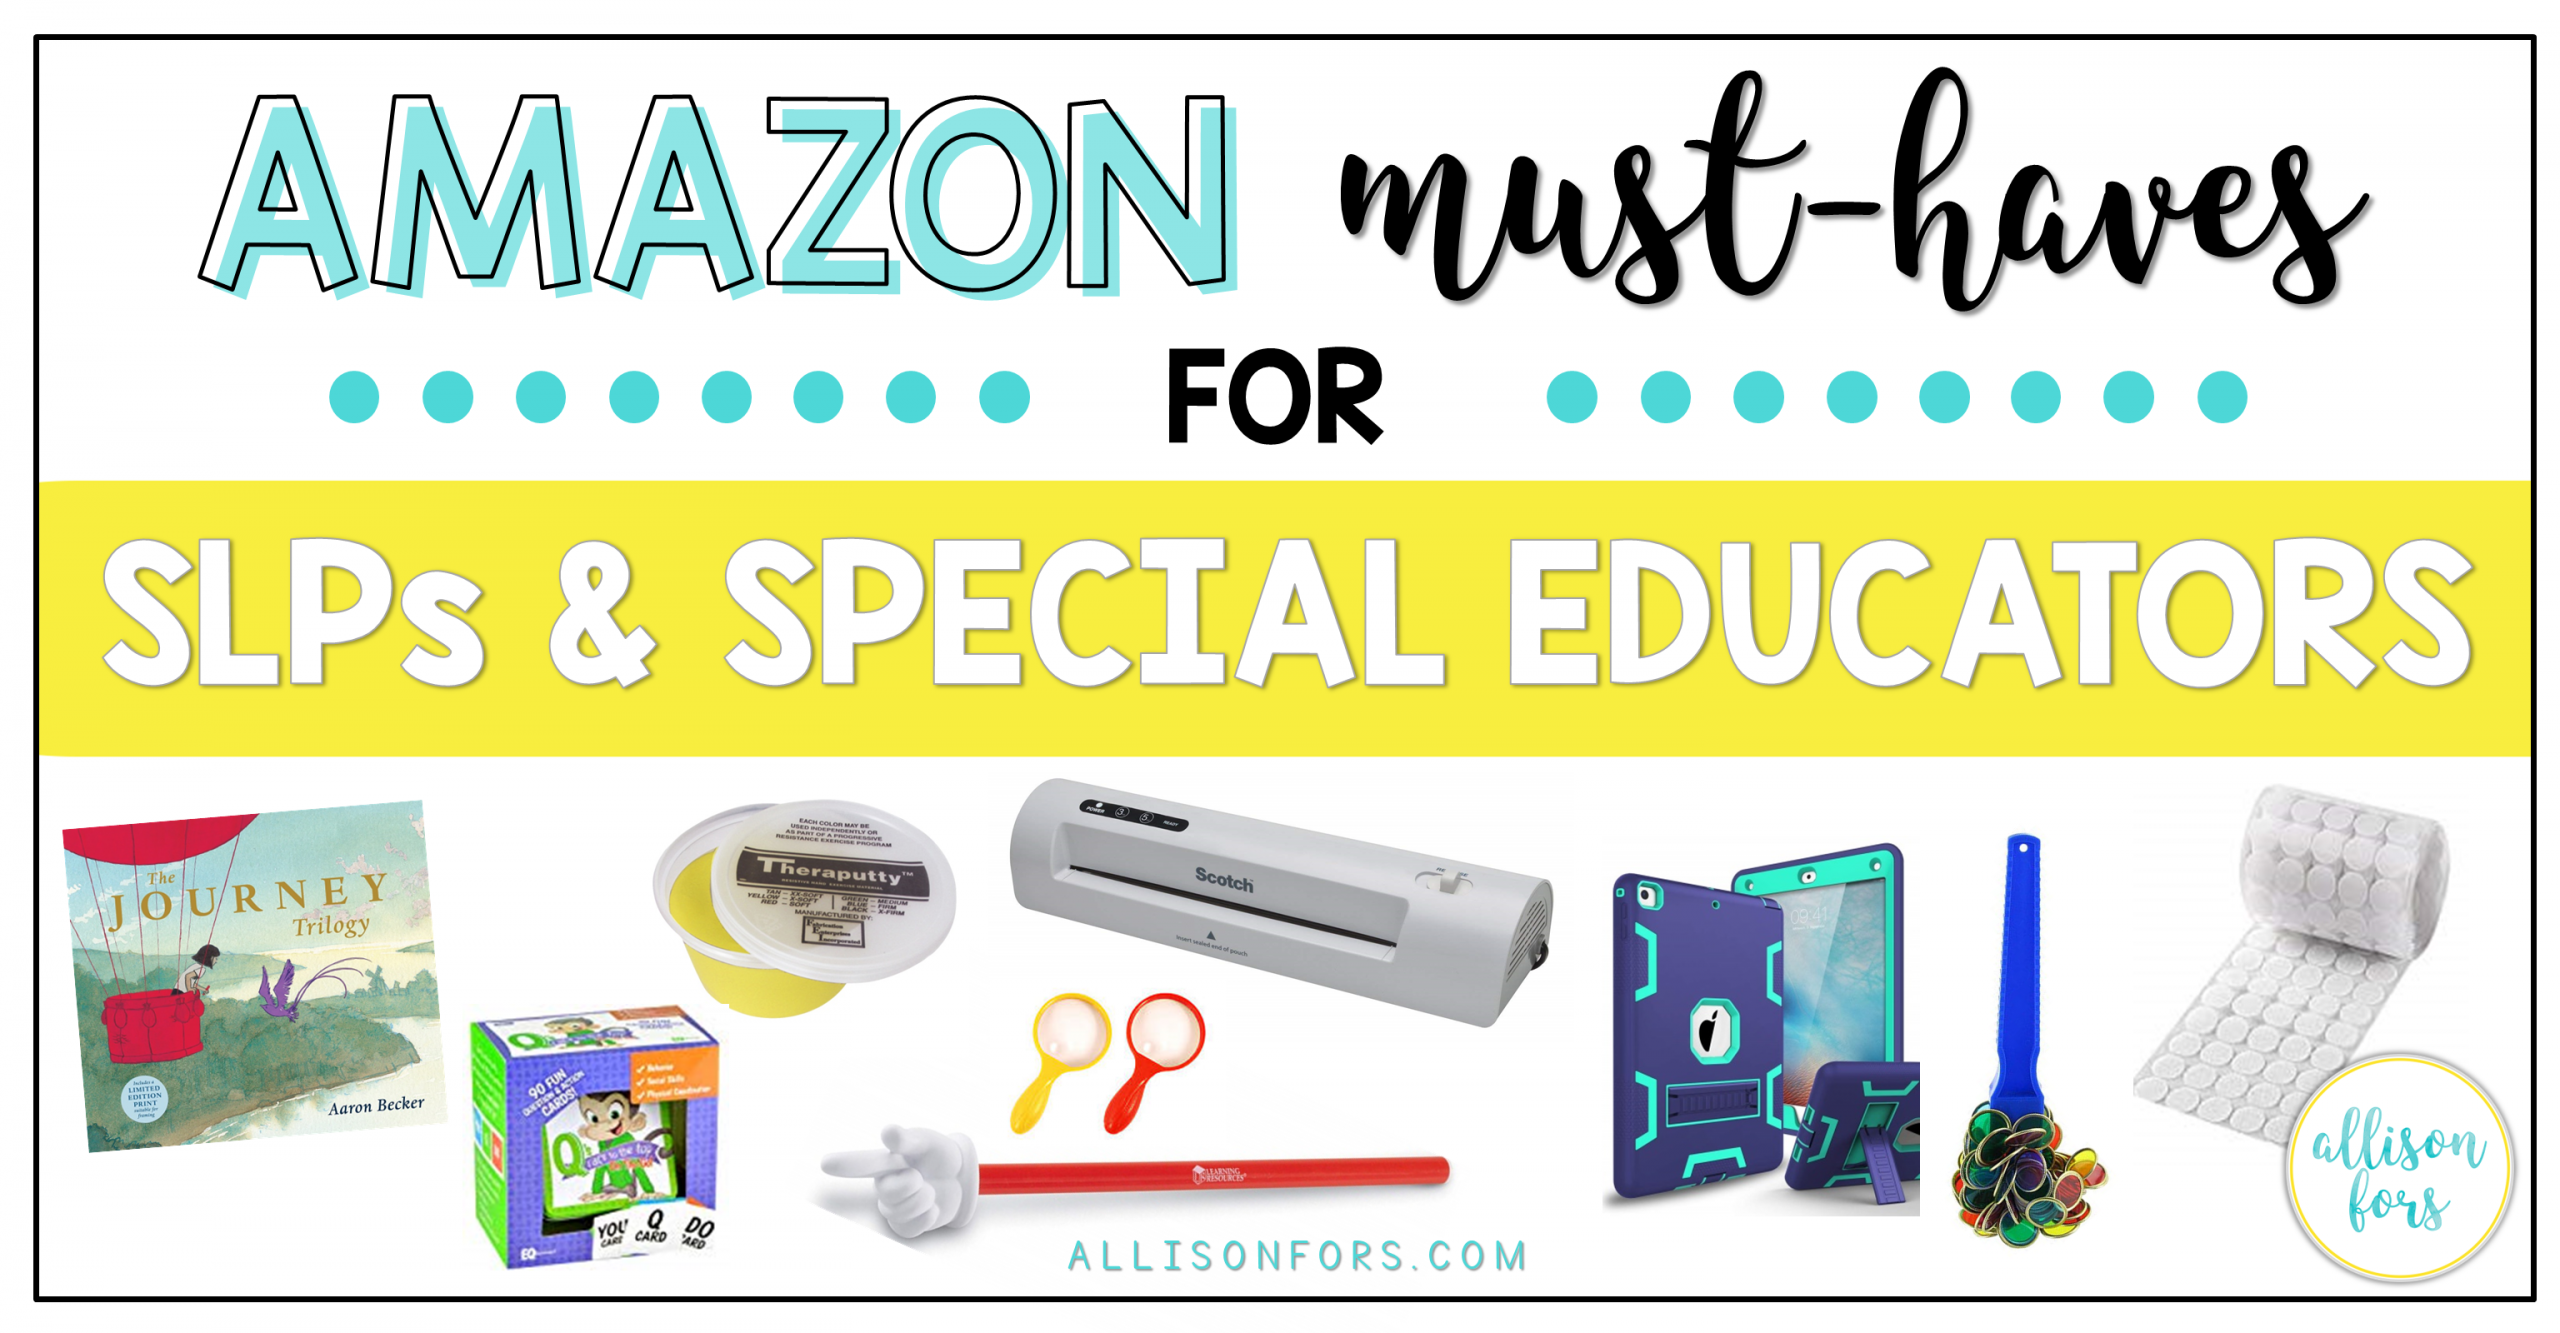 Amazon Must-Haves for SLPs and Special Educators